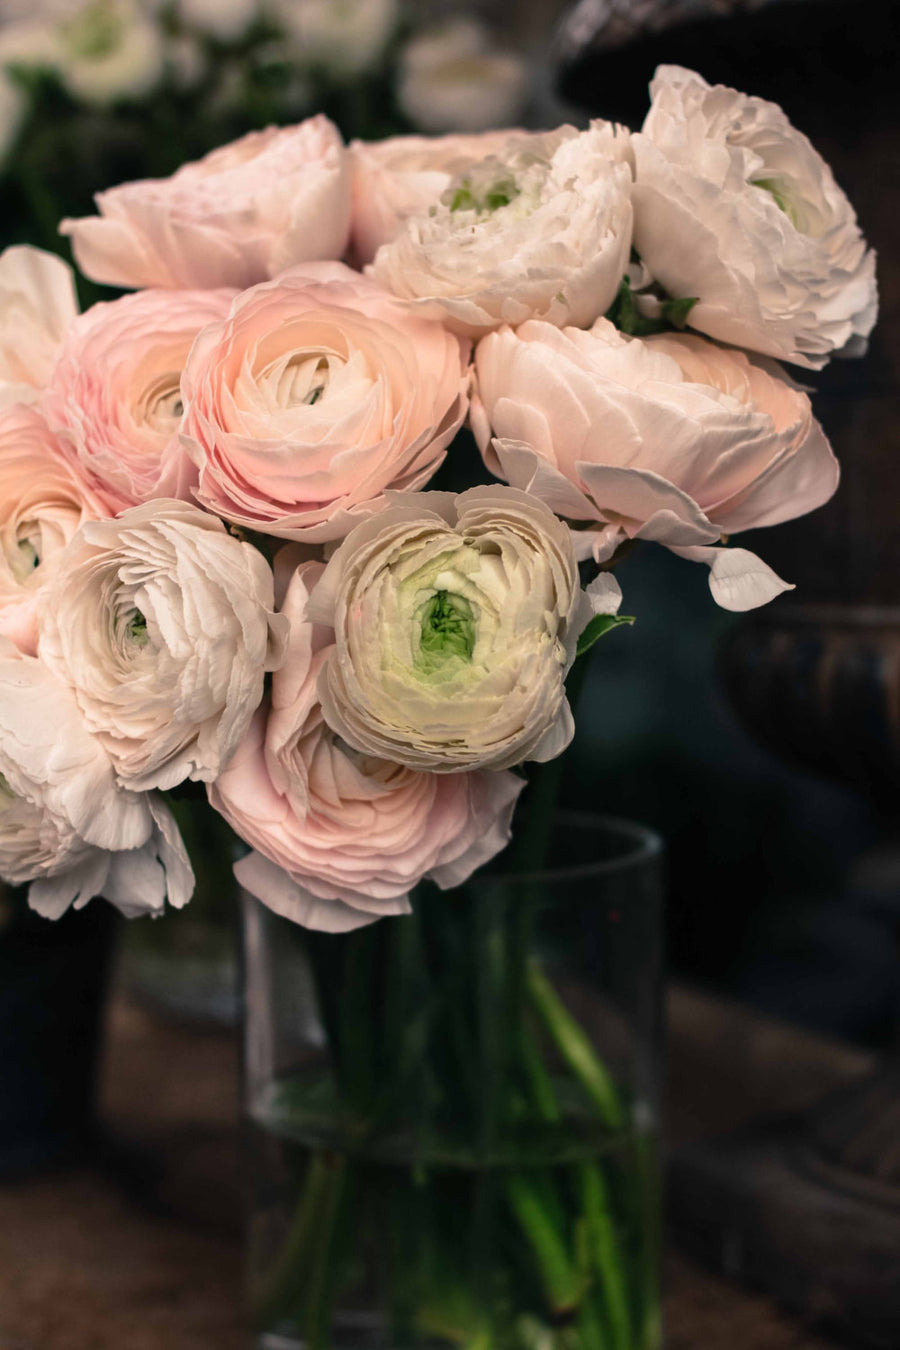 Pink Ranunculus for sale in Paris - Every Day Paris